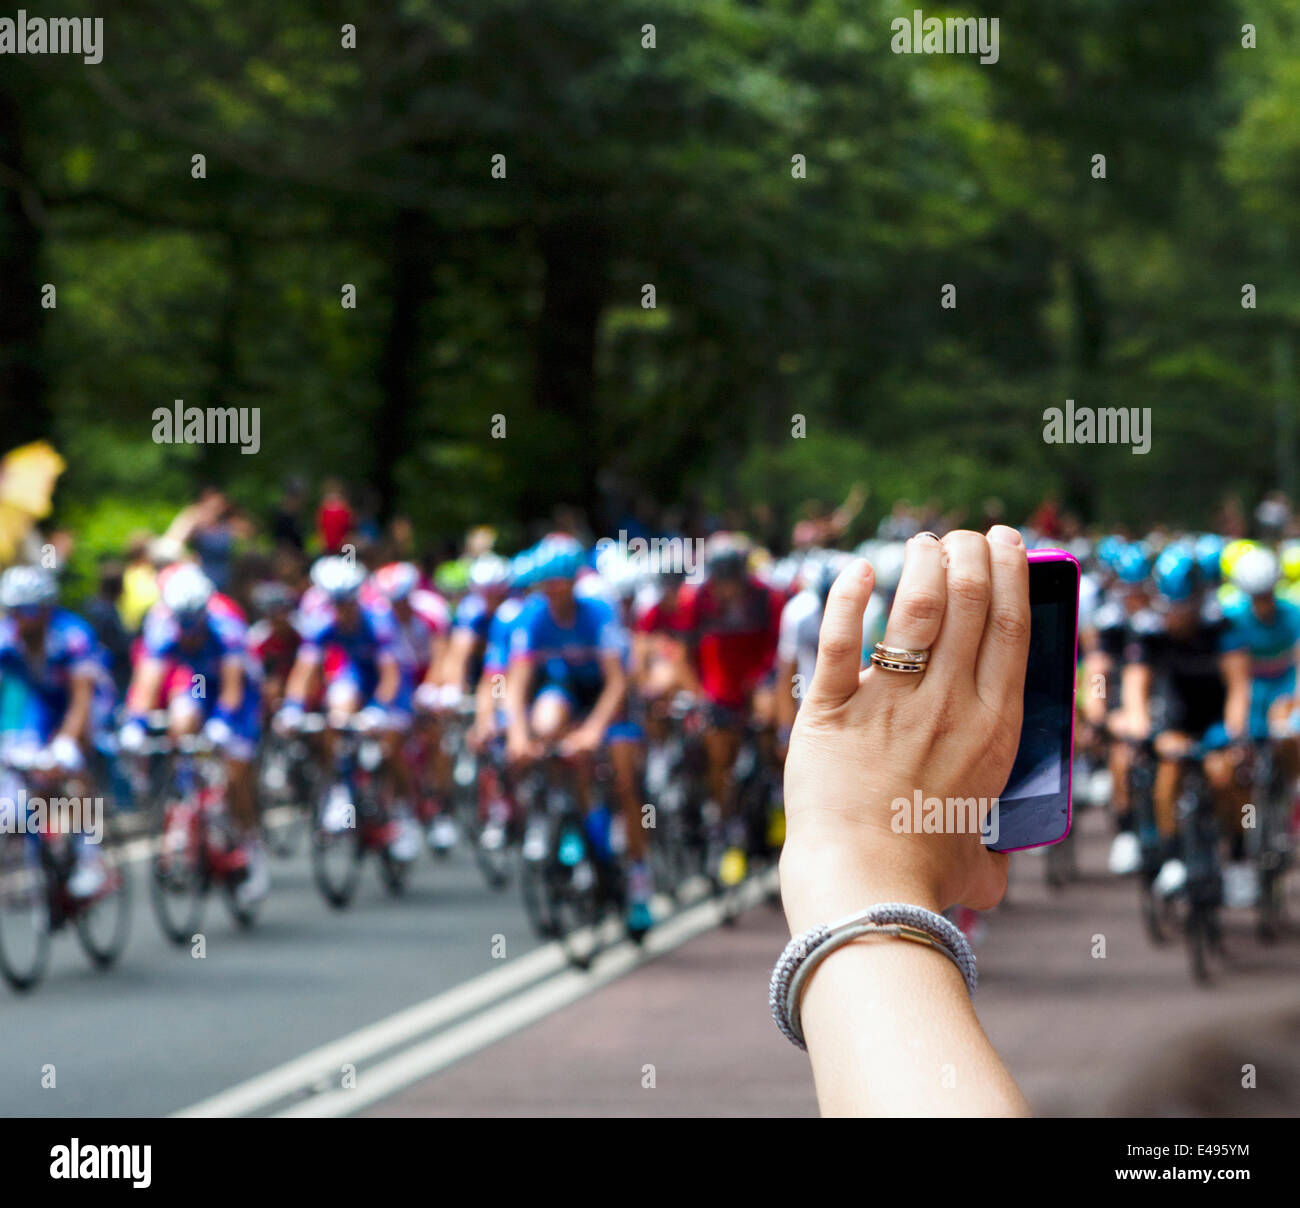 Woman taking a photo with a smartphone of the peleton approaching Holmfirth on Stage 2 of the 2014 Tour de France. - Stock Image